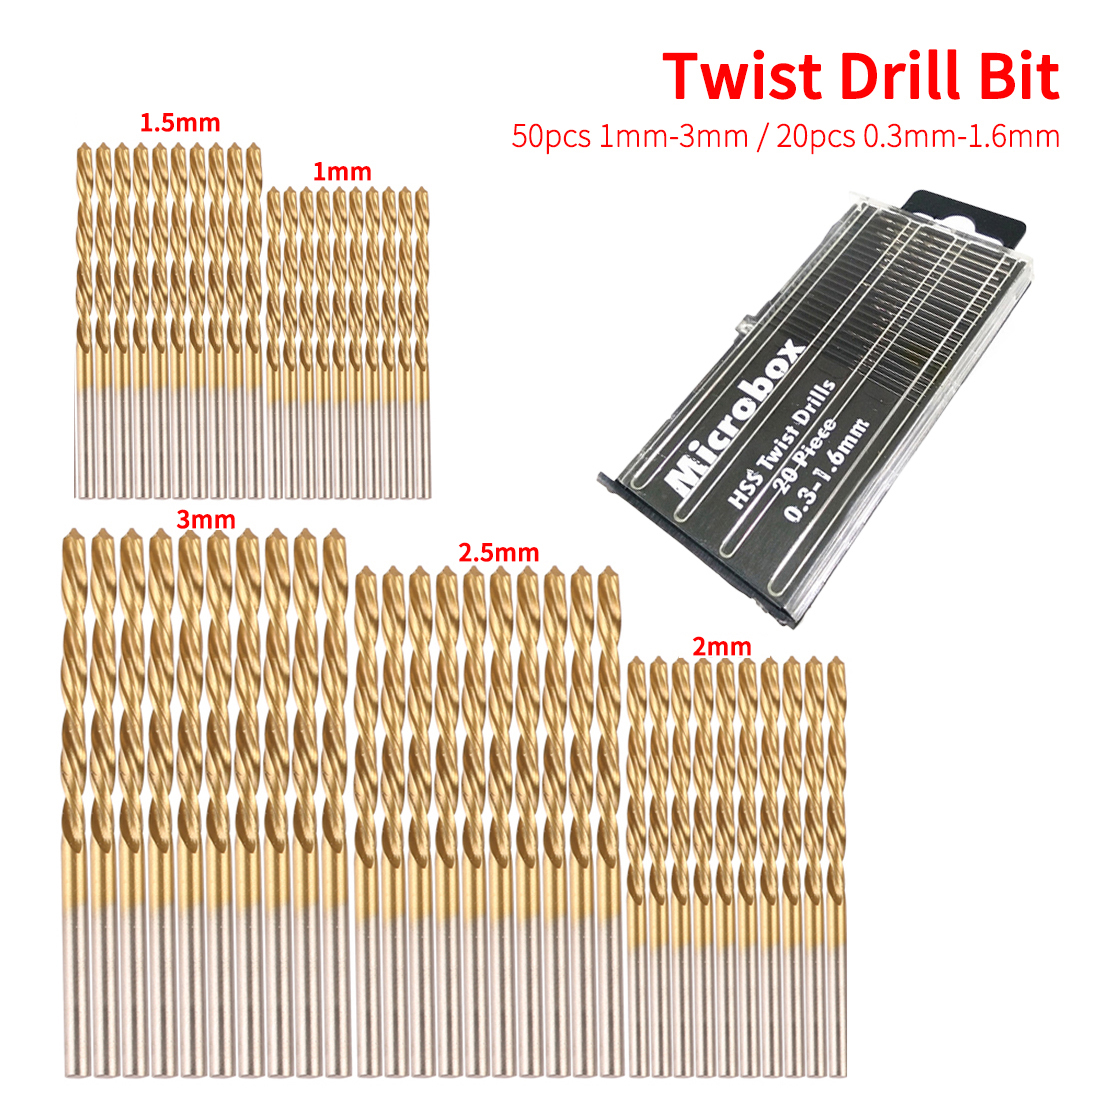 Woodworking Tools 50pcs 1/1.5/2/2.5/3mm Titanium Coated HSS Twist Drill Bit Set Tool Twist Drill Bit For Plastic Metal Wood